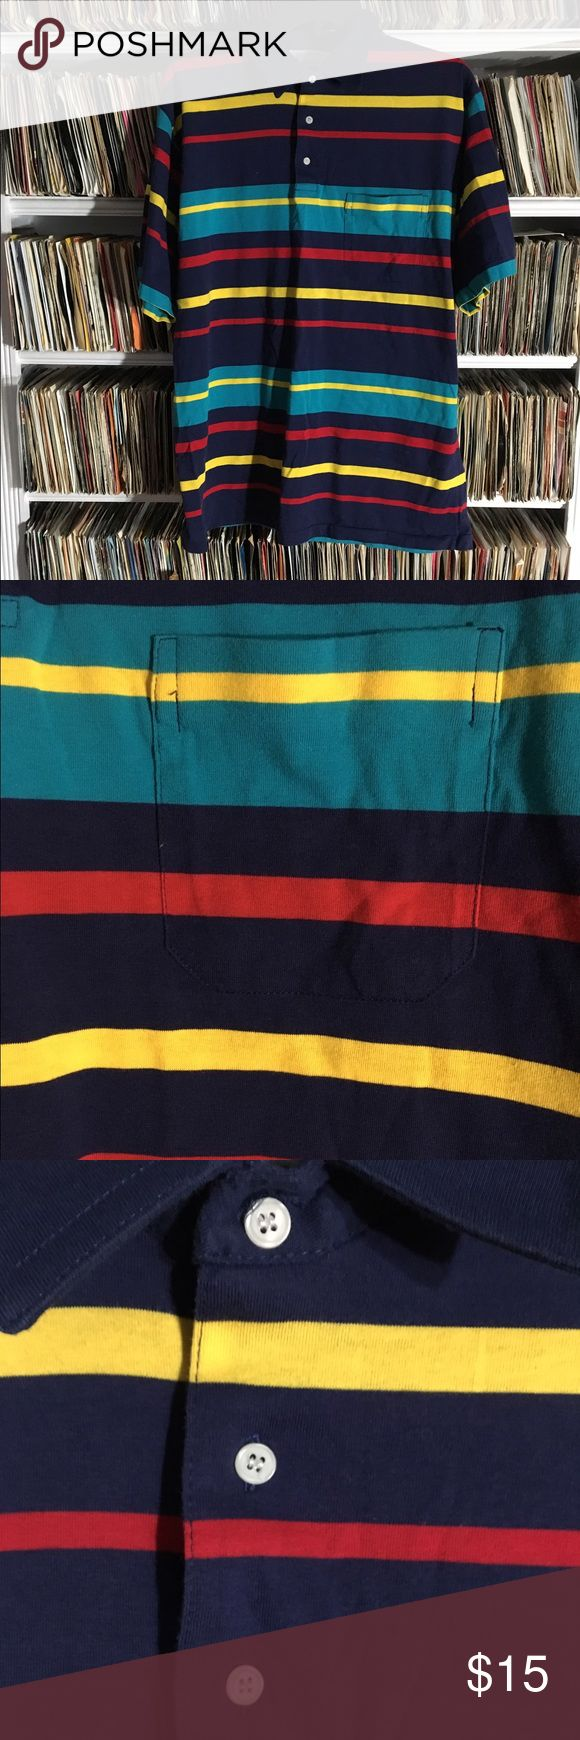 Vintage striped polo shirt with pocket This vintage striped shirt was made by Knightsbridge. It's in good shape. Very bright colors. Vintage Shirts Polos